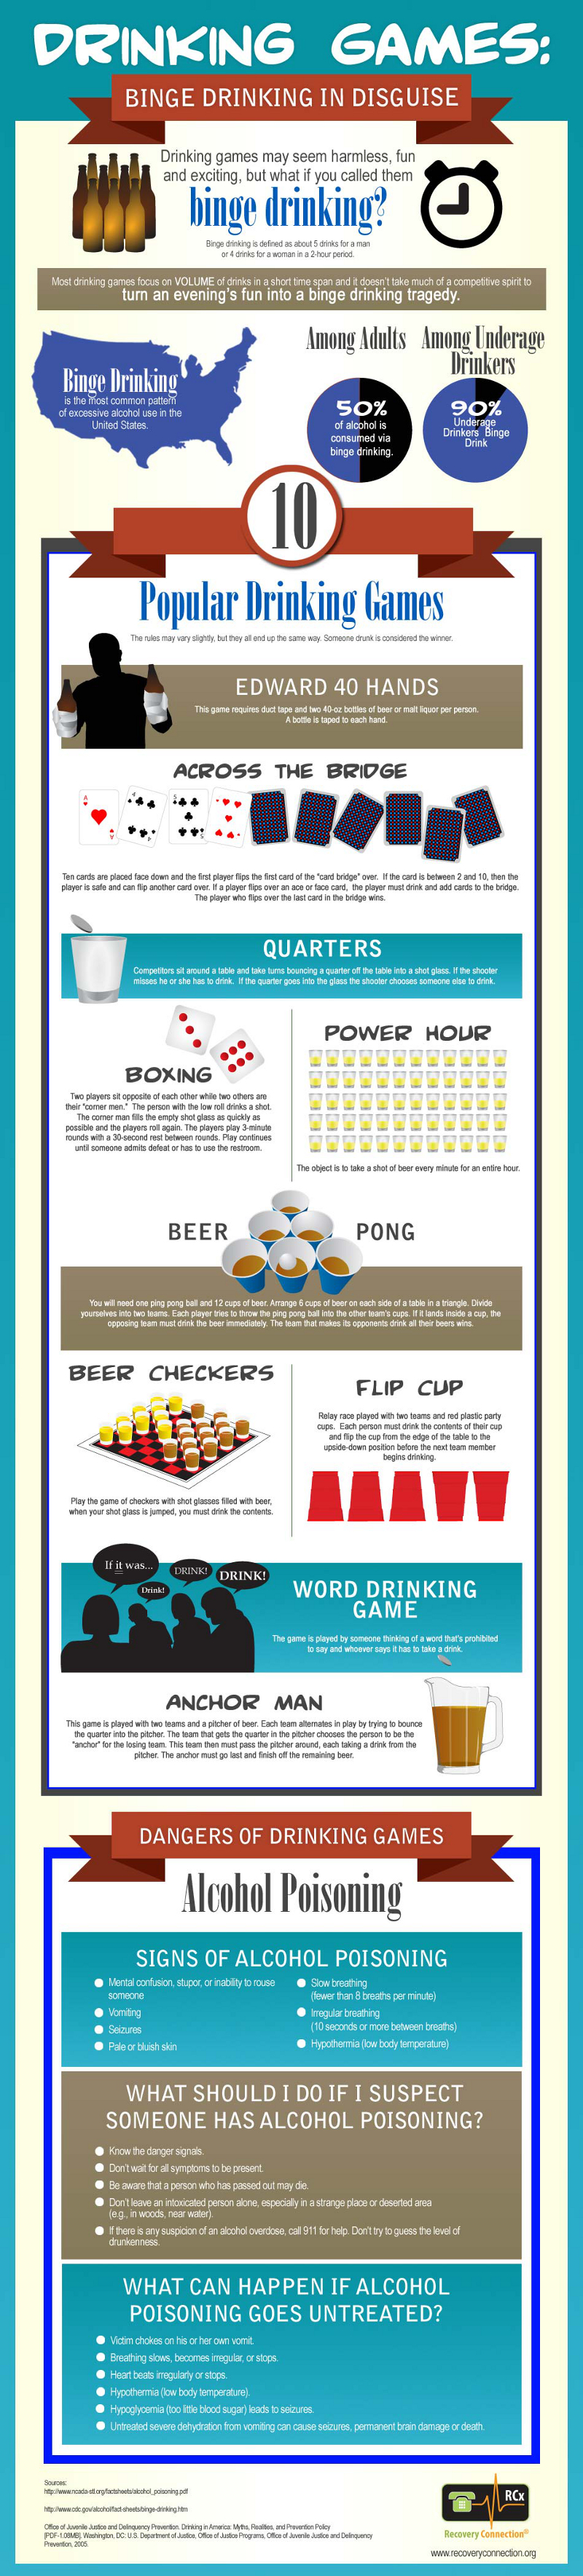 Top Drinking Games